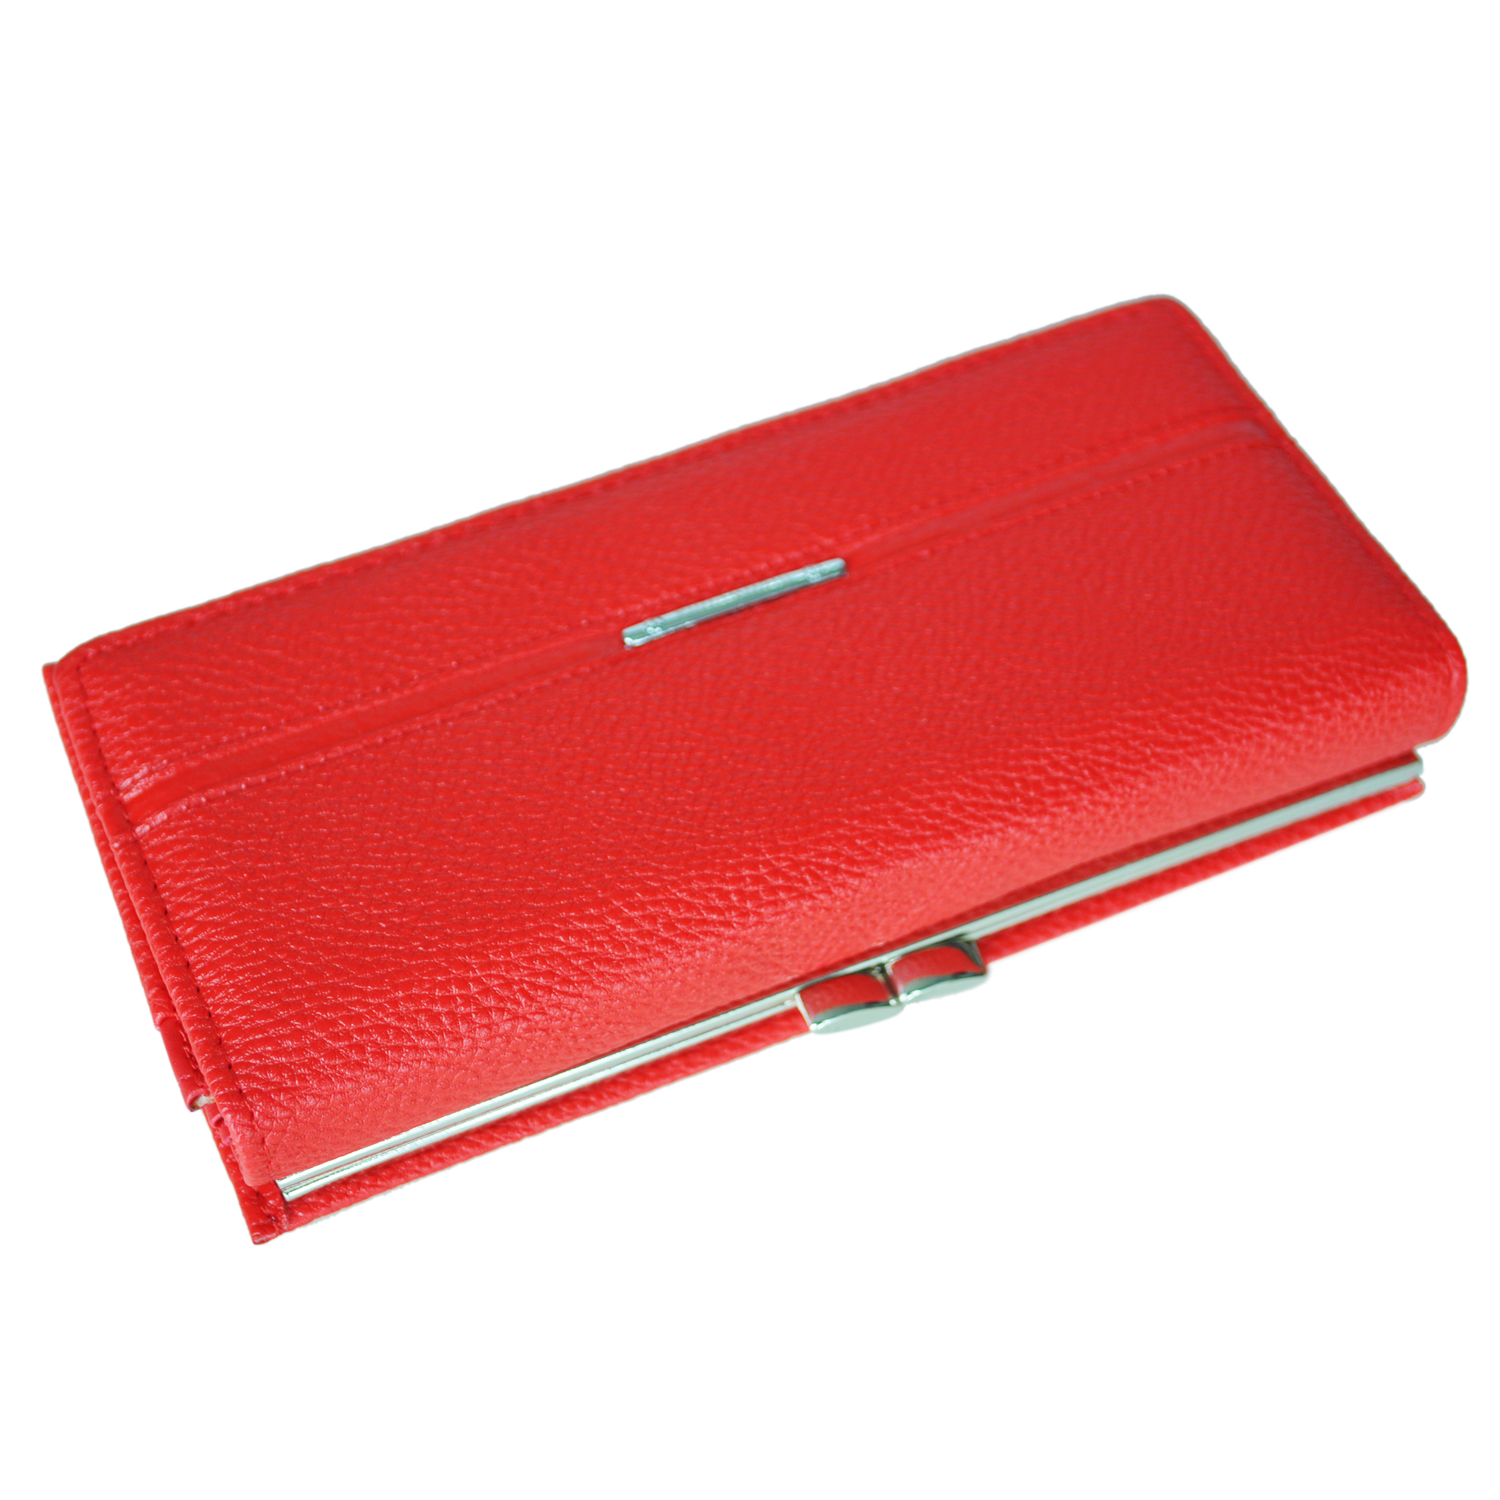 ... x Women  s Wallet Note Light shooting and different displays may cause  the color of the item in the picture a little different from the real thing. 7f2587e97c0e4